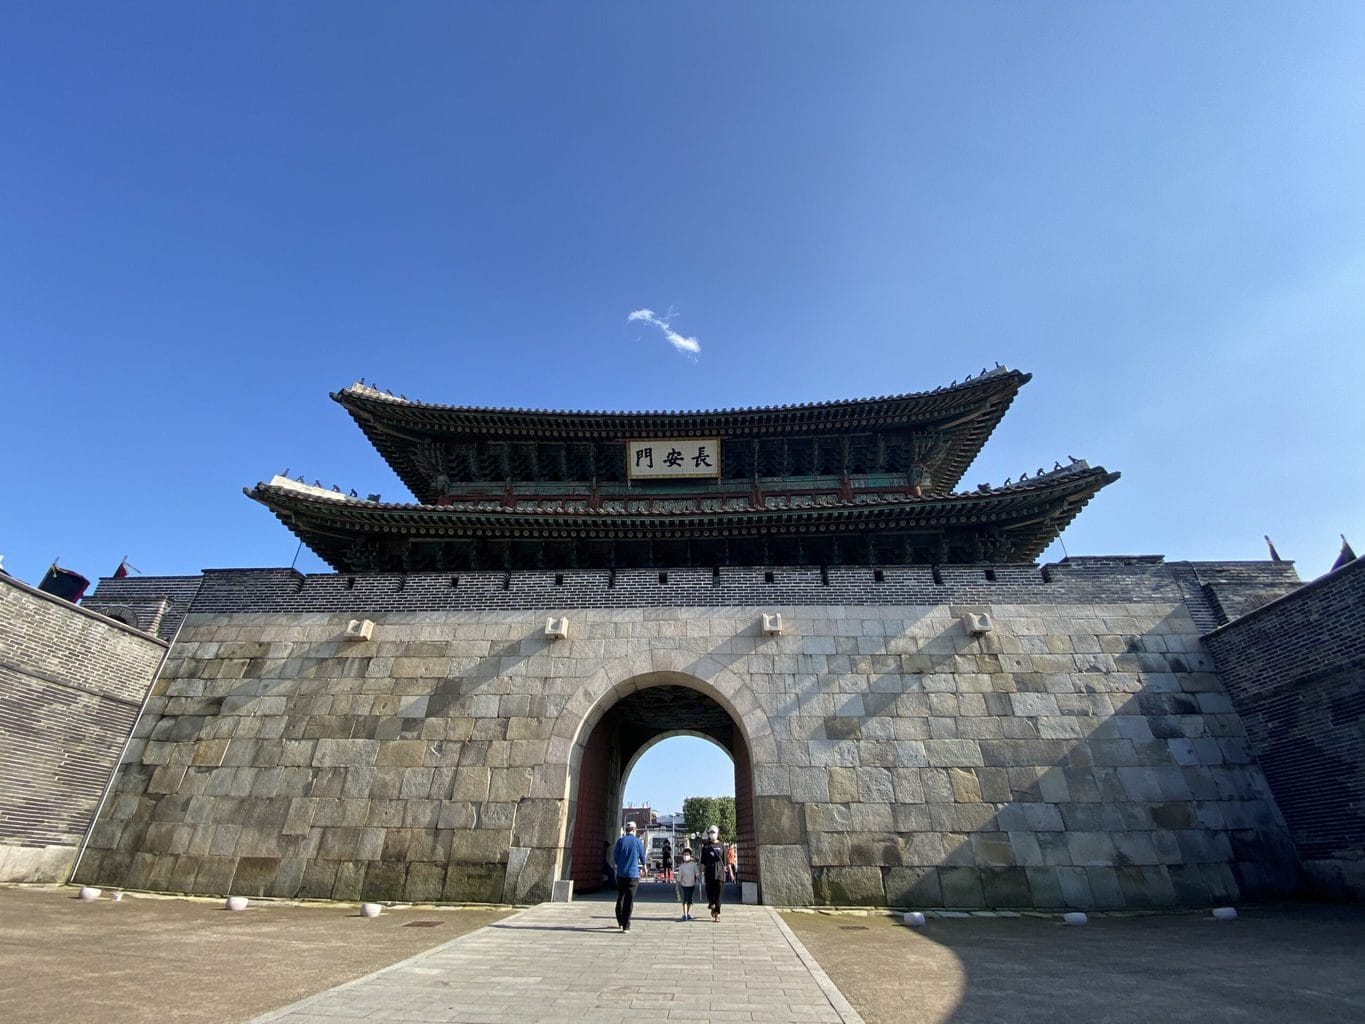 UNESCO Hwaseong Fortress in Suwon